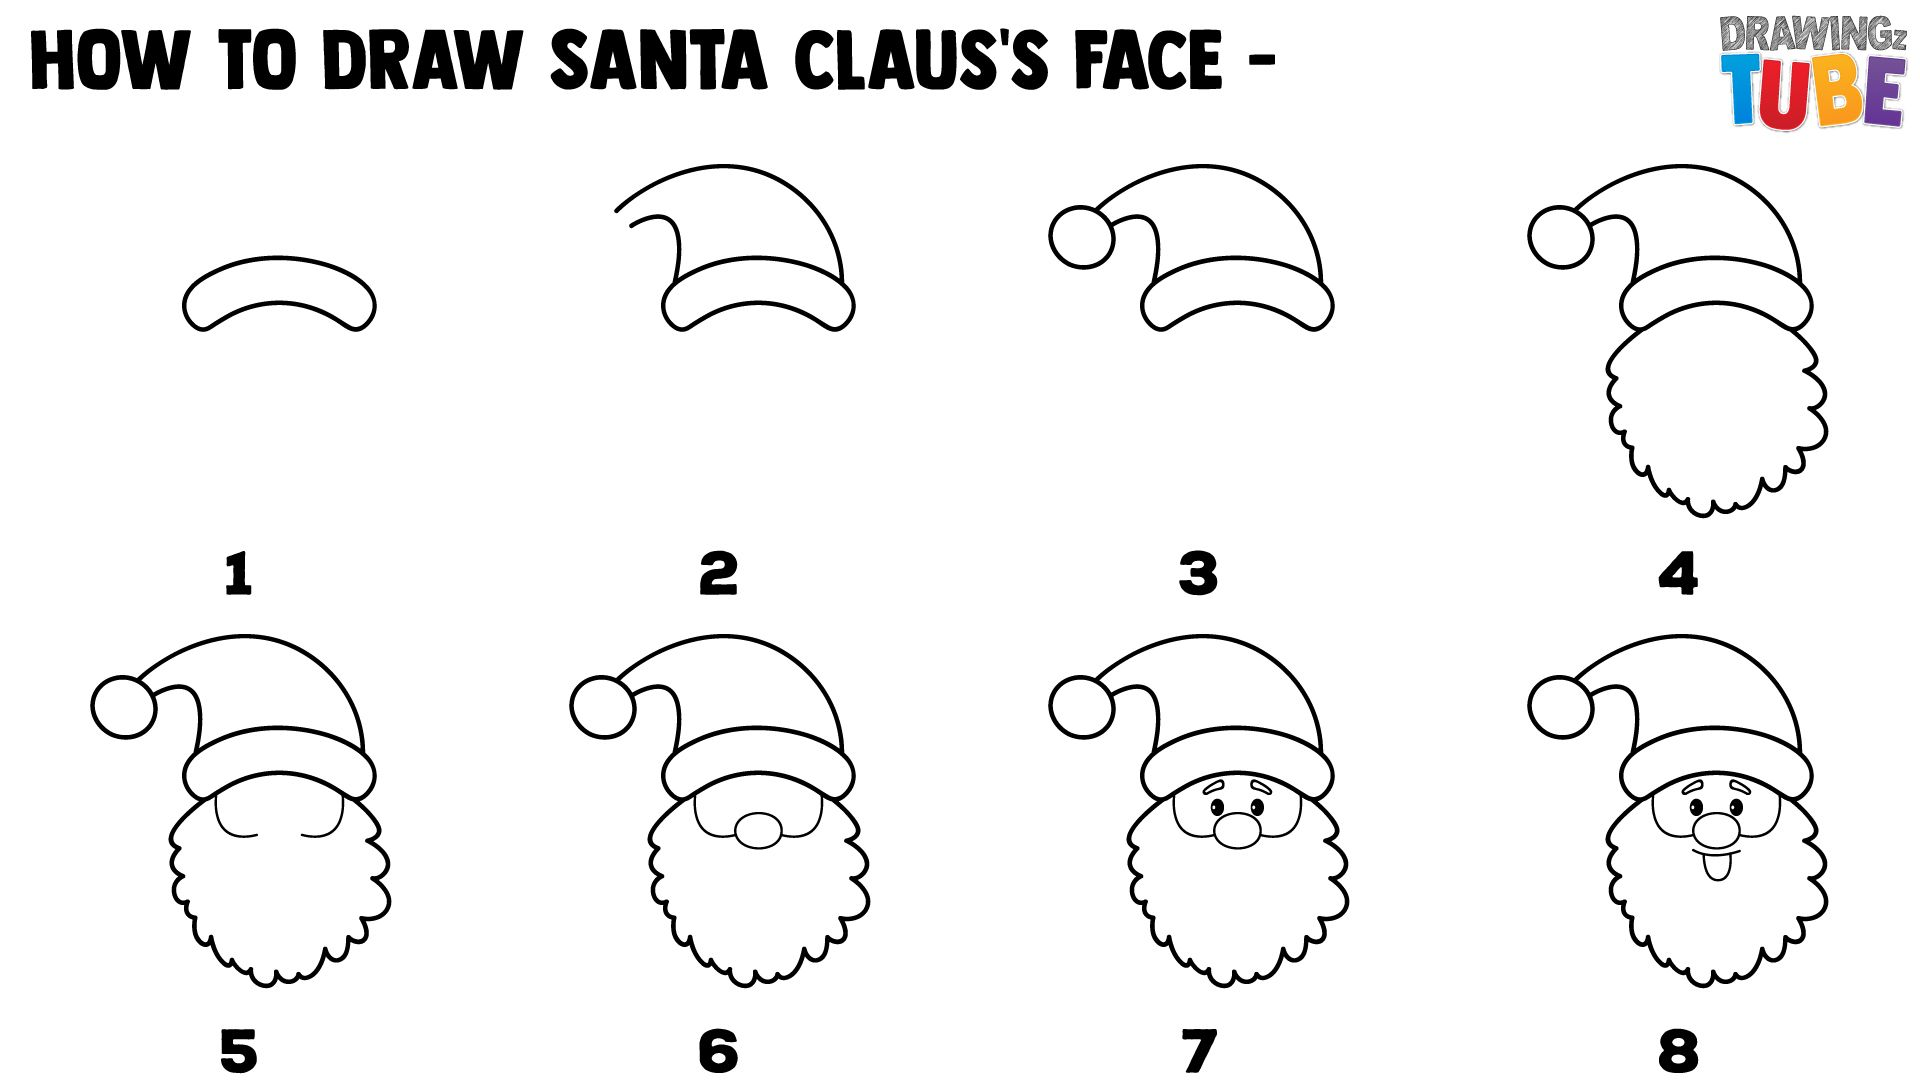 How To Draw Cute Santa Claus S Face For Kids Step By Step Drawings For Kids Christmas Drawings Easy Santa Drawing Santa Claus Drawing Christmas Drawing